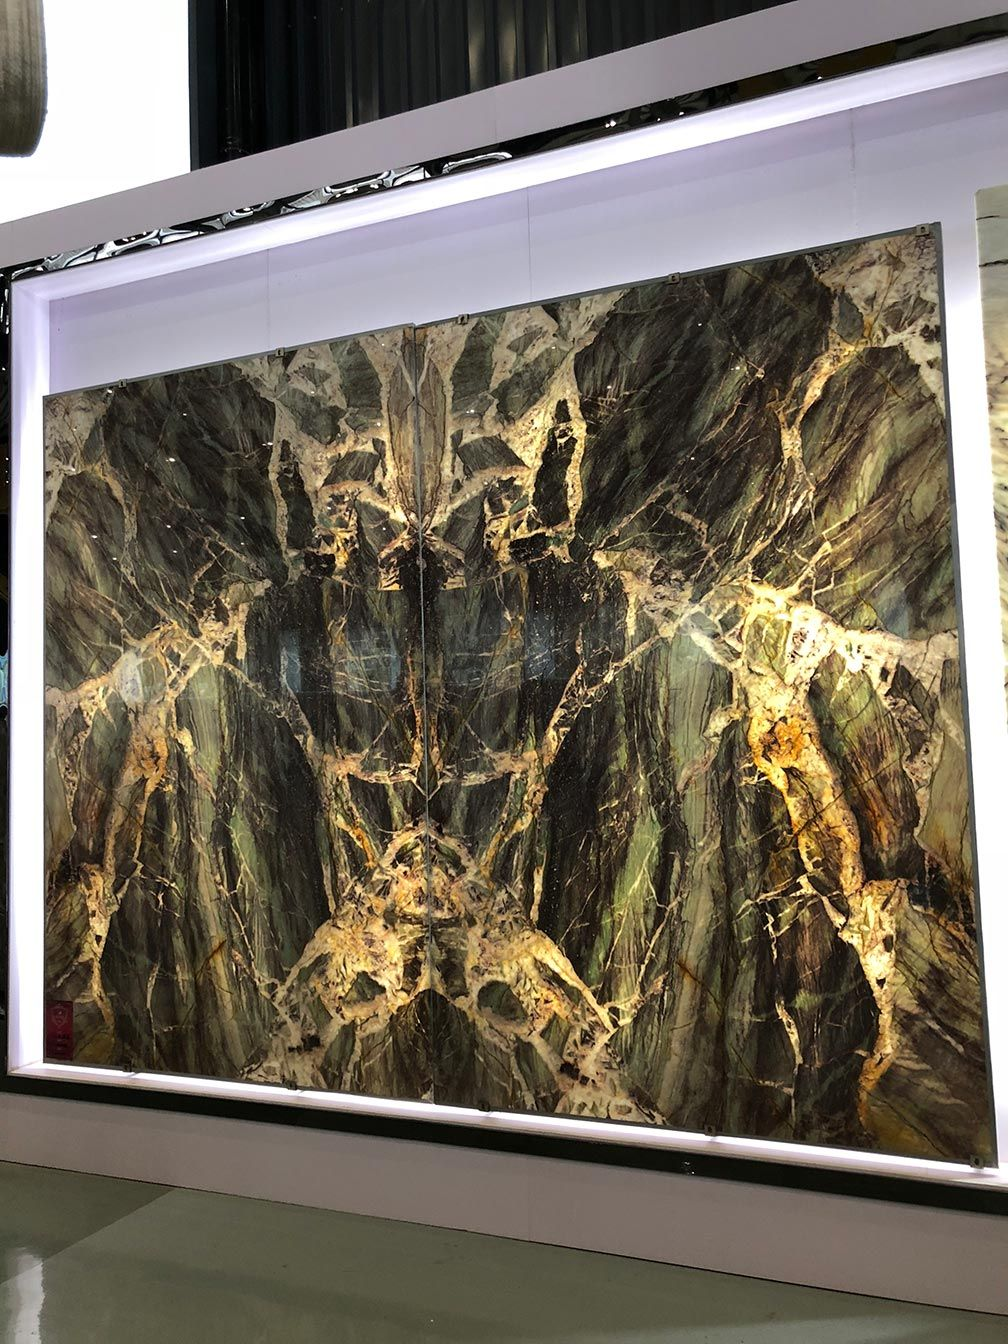 Crystal Onyx Stone Is Available In Blocks Slabs Tiles Bookmatch And More This Gold And Black Onyx Is A Rare And Beautiful Stone Sup Onyx Marble Stone Onyx